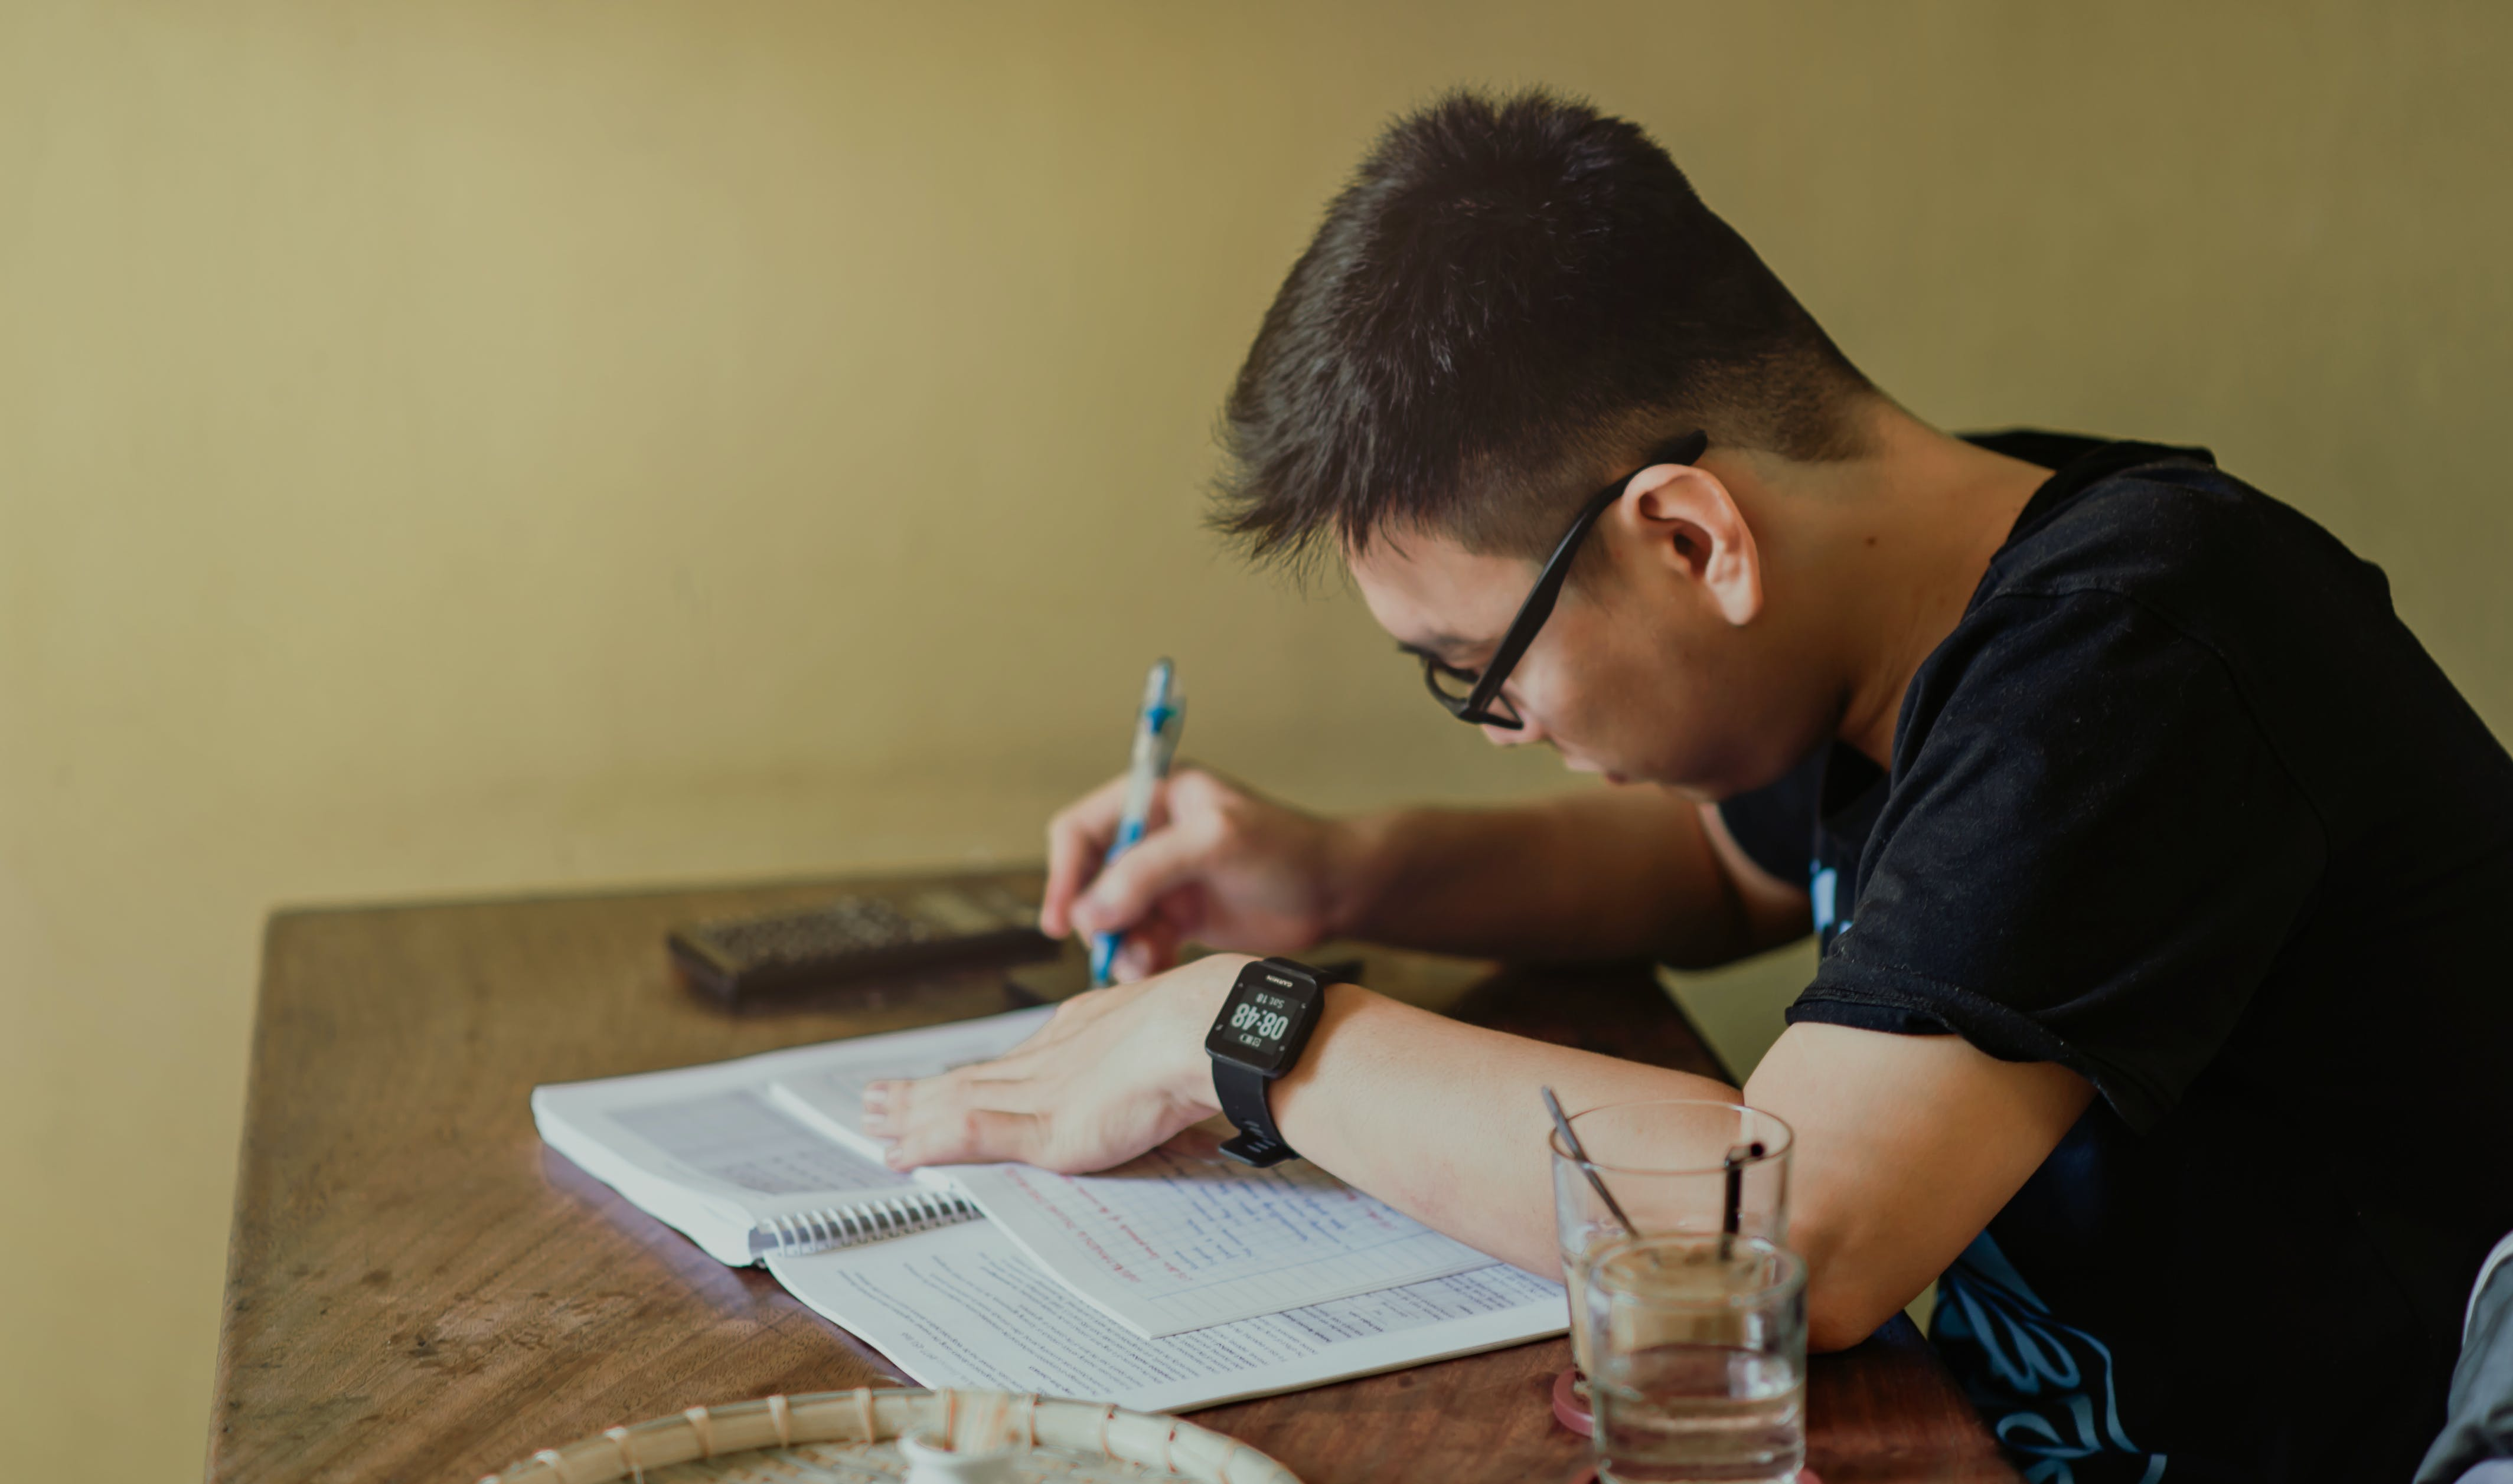 Man in Black Shirt Sitting and Writing